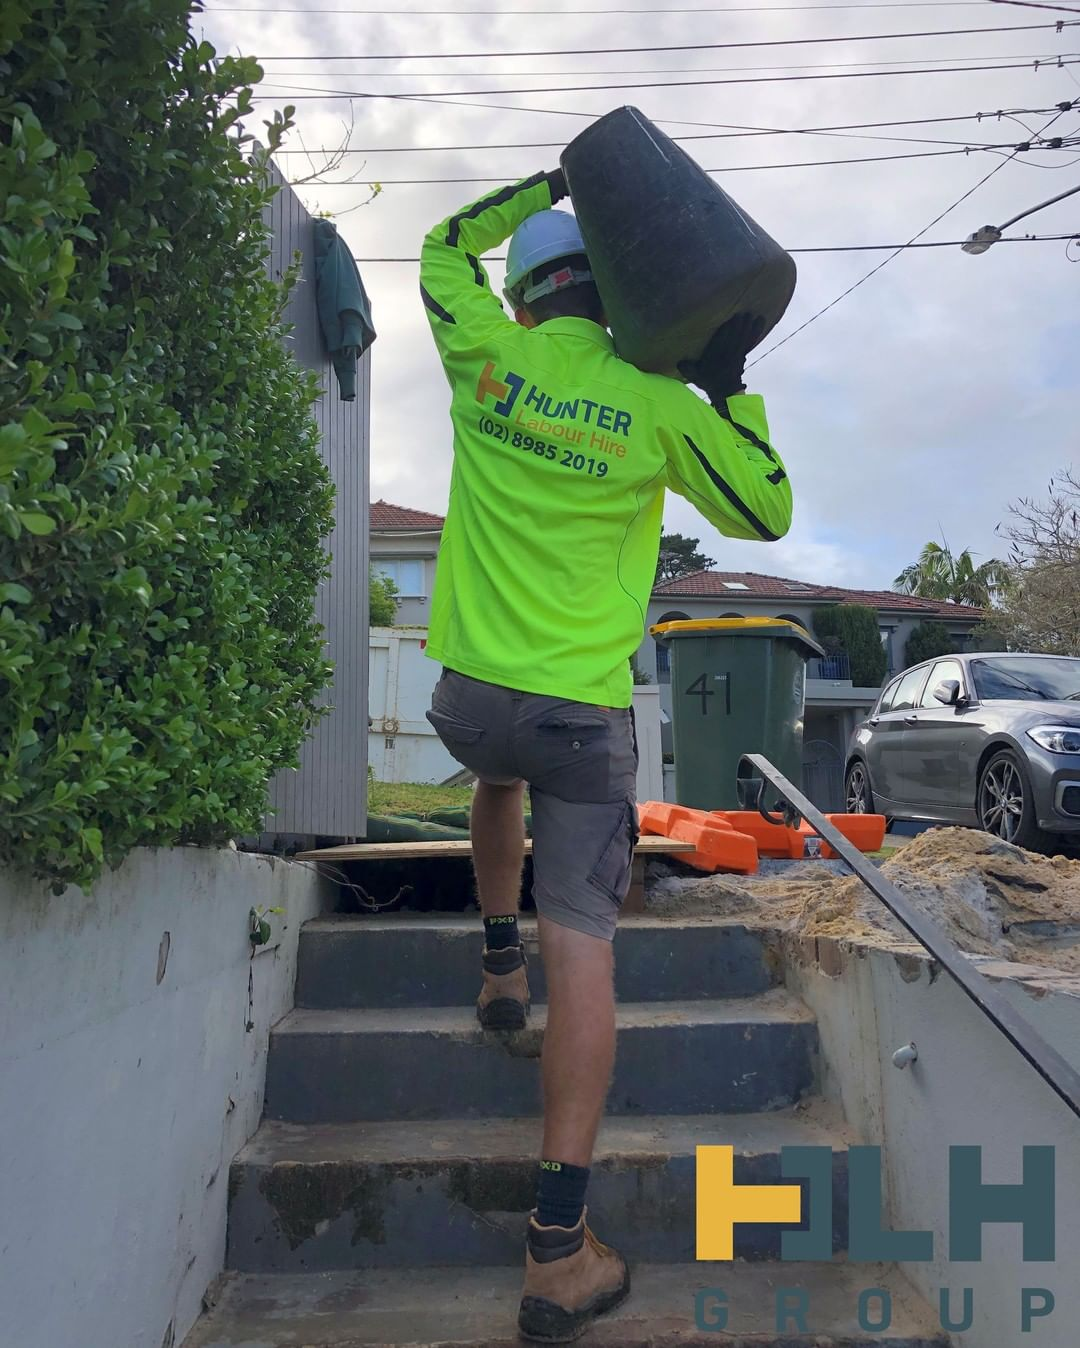 No long weekend hangover for David, who was out and about working hard this morning. How did you enjoy your long weekend? ☀️ ___ If you have any upcoming labour hire requirements or wish to become a part of the HLH team simply give us a call on (02) 89852019 or email us at info@hunterlabourhire.com.au and one of our friendly team will get back to you asap ___ #hunterlabourhire #hlhgroup #labourhire #labourhiresydney  #reliablelabour #constructionjobs #sydneybuilder #sydneybuilders #buildersofinsta #sydneyconstruction #skilledtrades #safetyfirst #sydneyjobs #picoftheday #loveyourwork  #safework